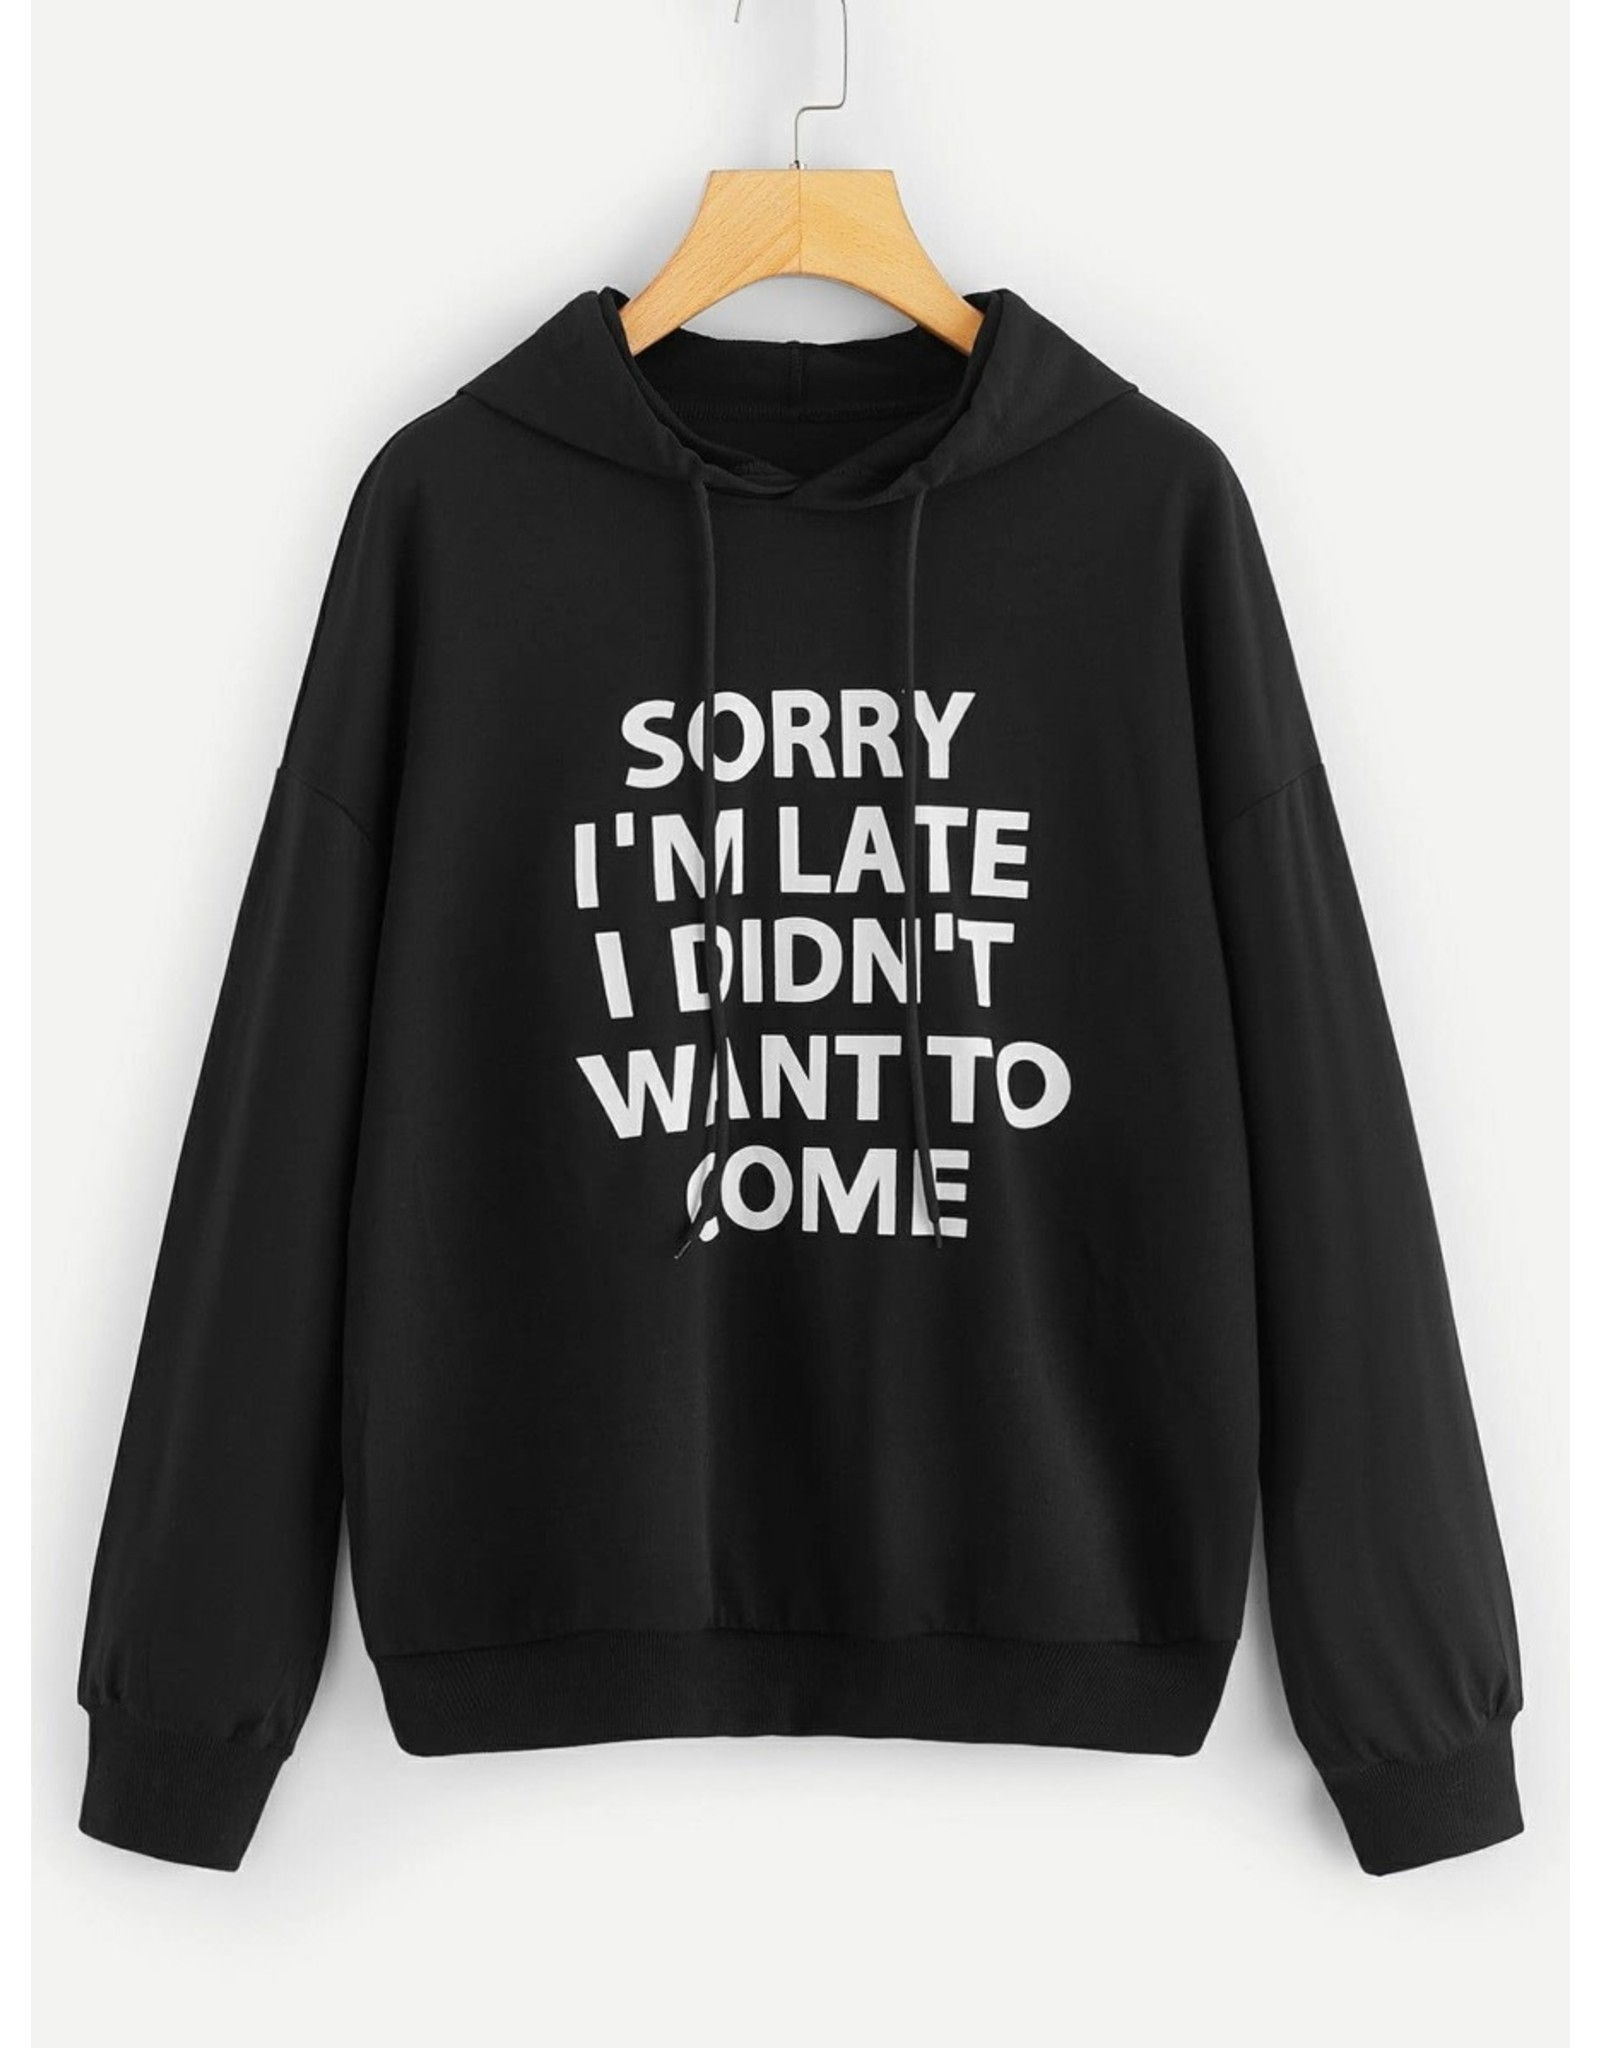 Shein Hoodie - (Women's 1X) Sorry I'm Late I Didn't Want To Come